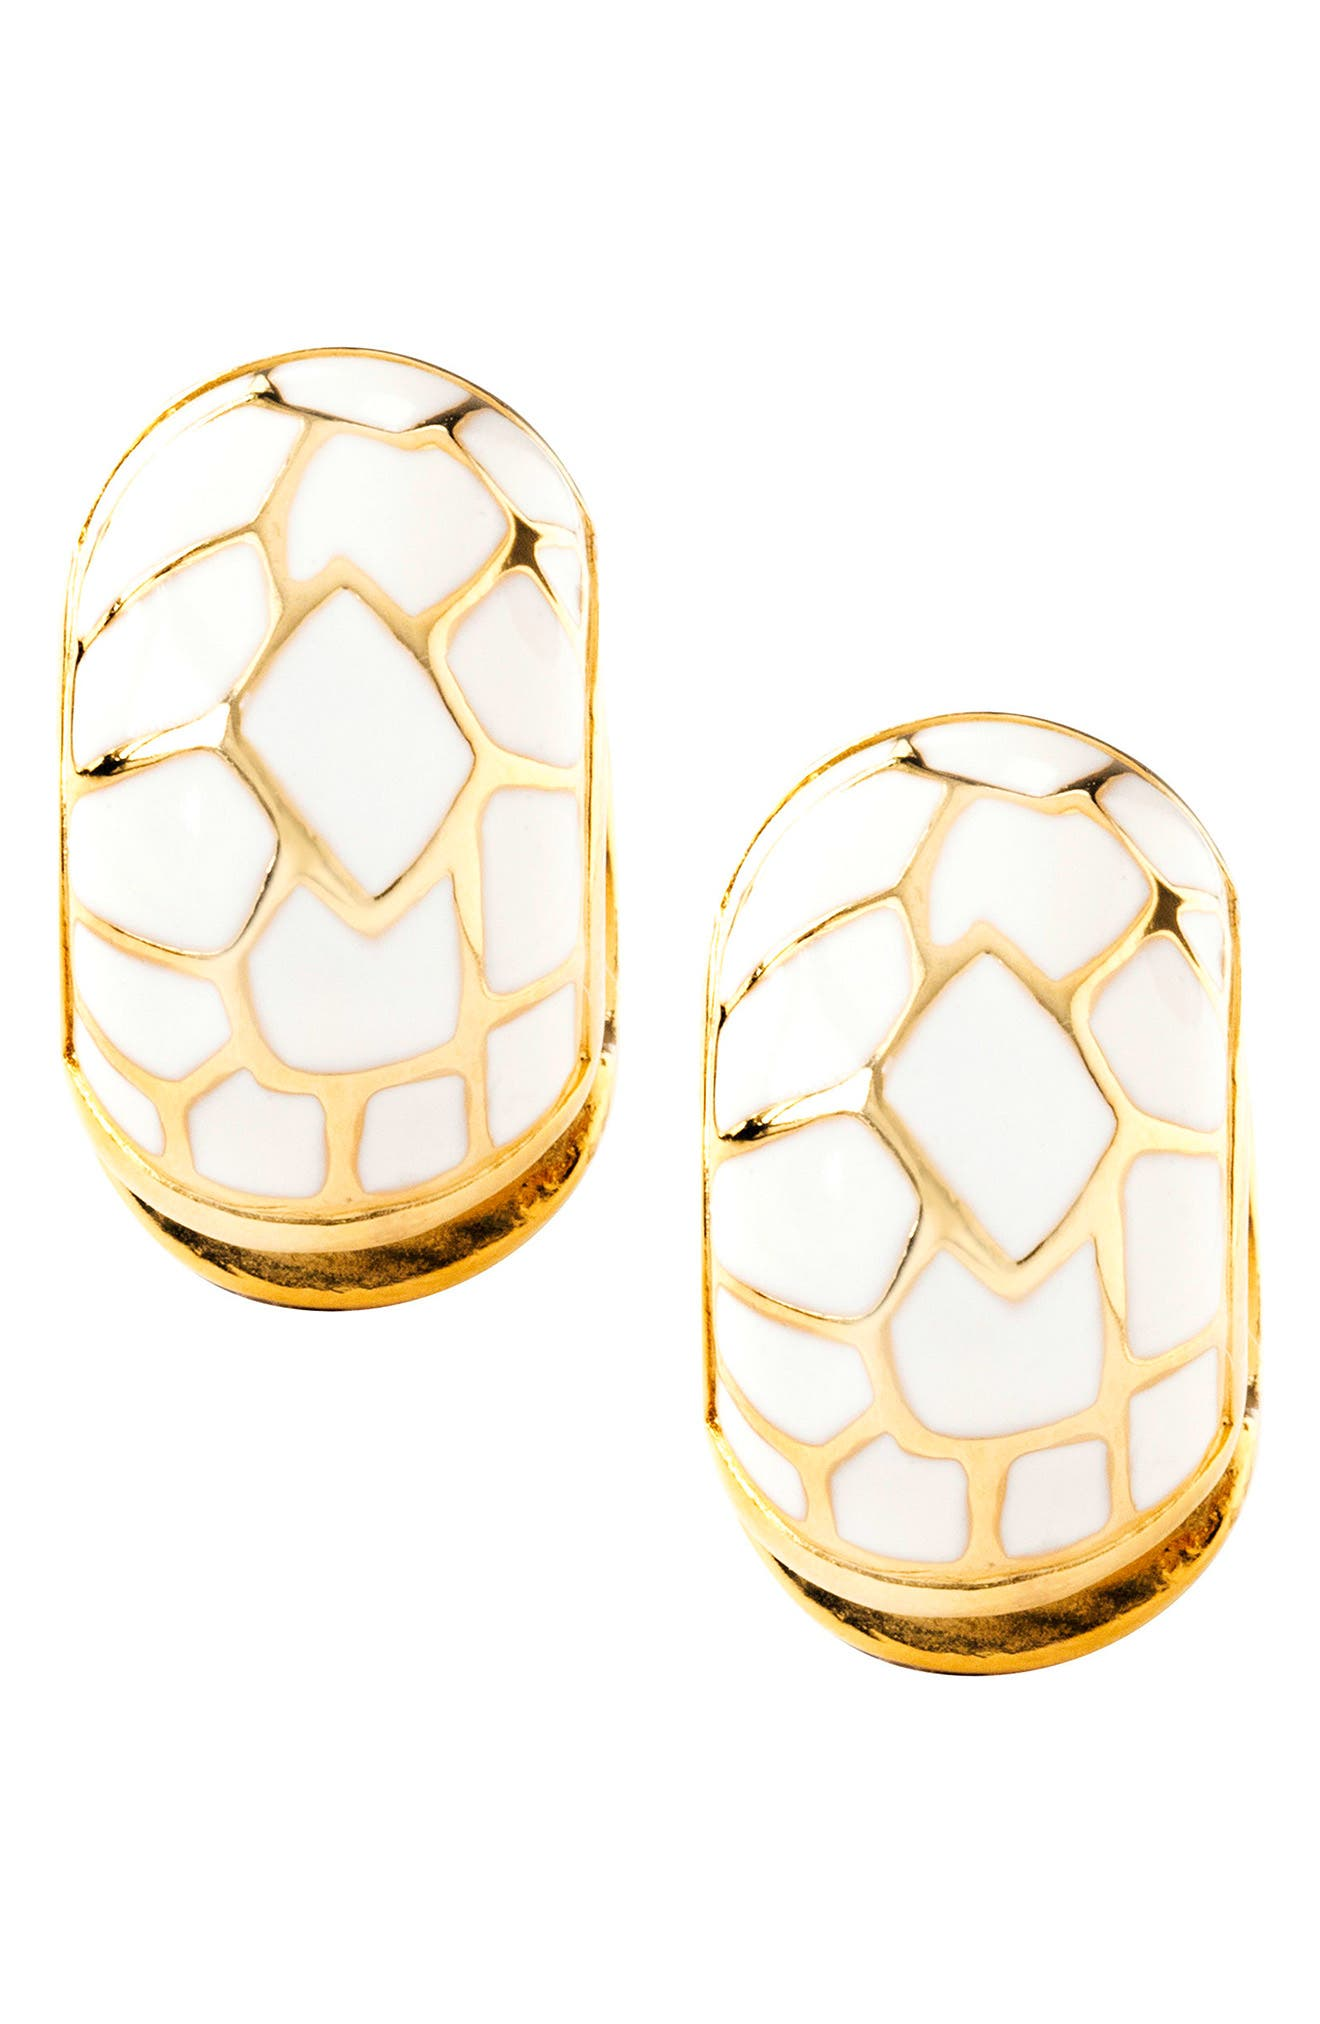 White Cobblestone Earrings,                             Alternate thumbnail 4, color,                             White